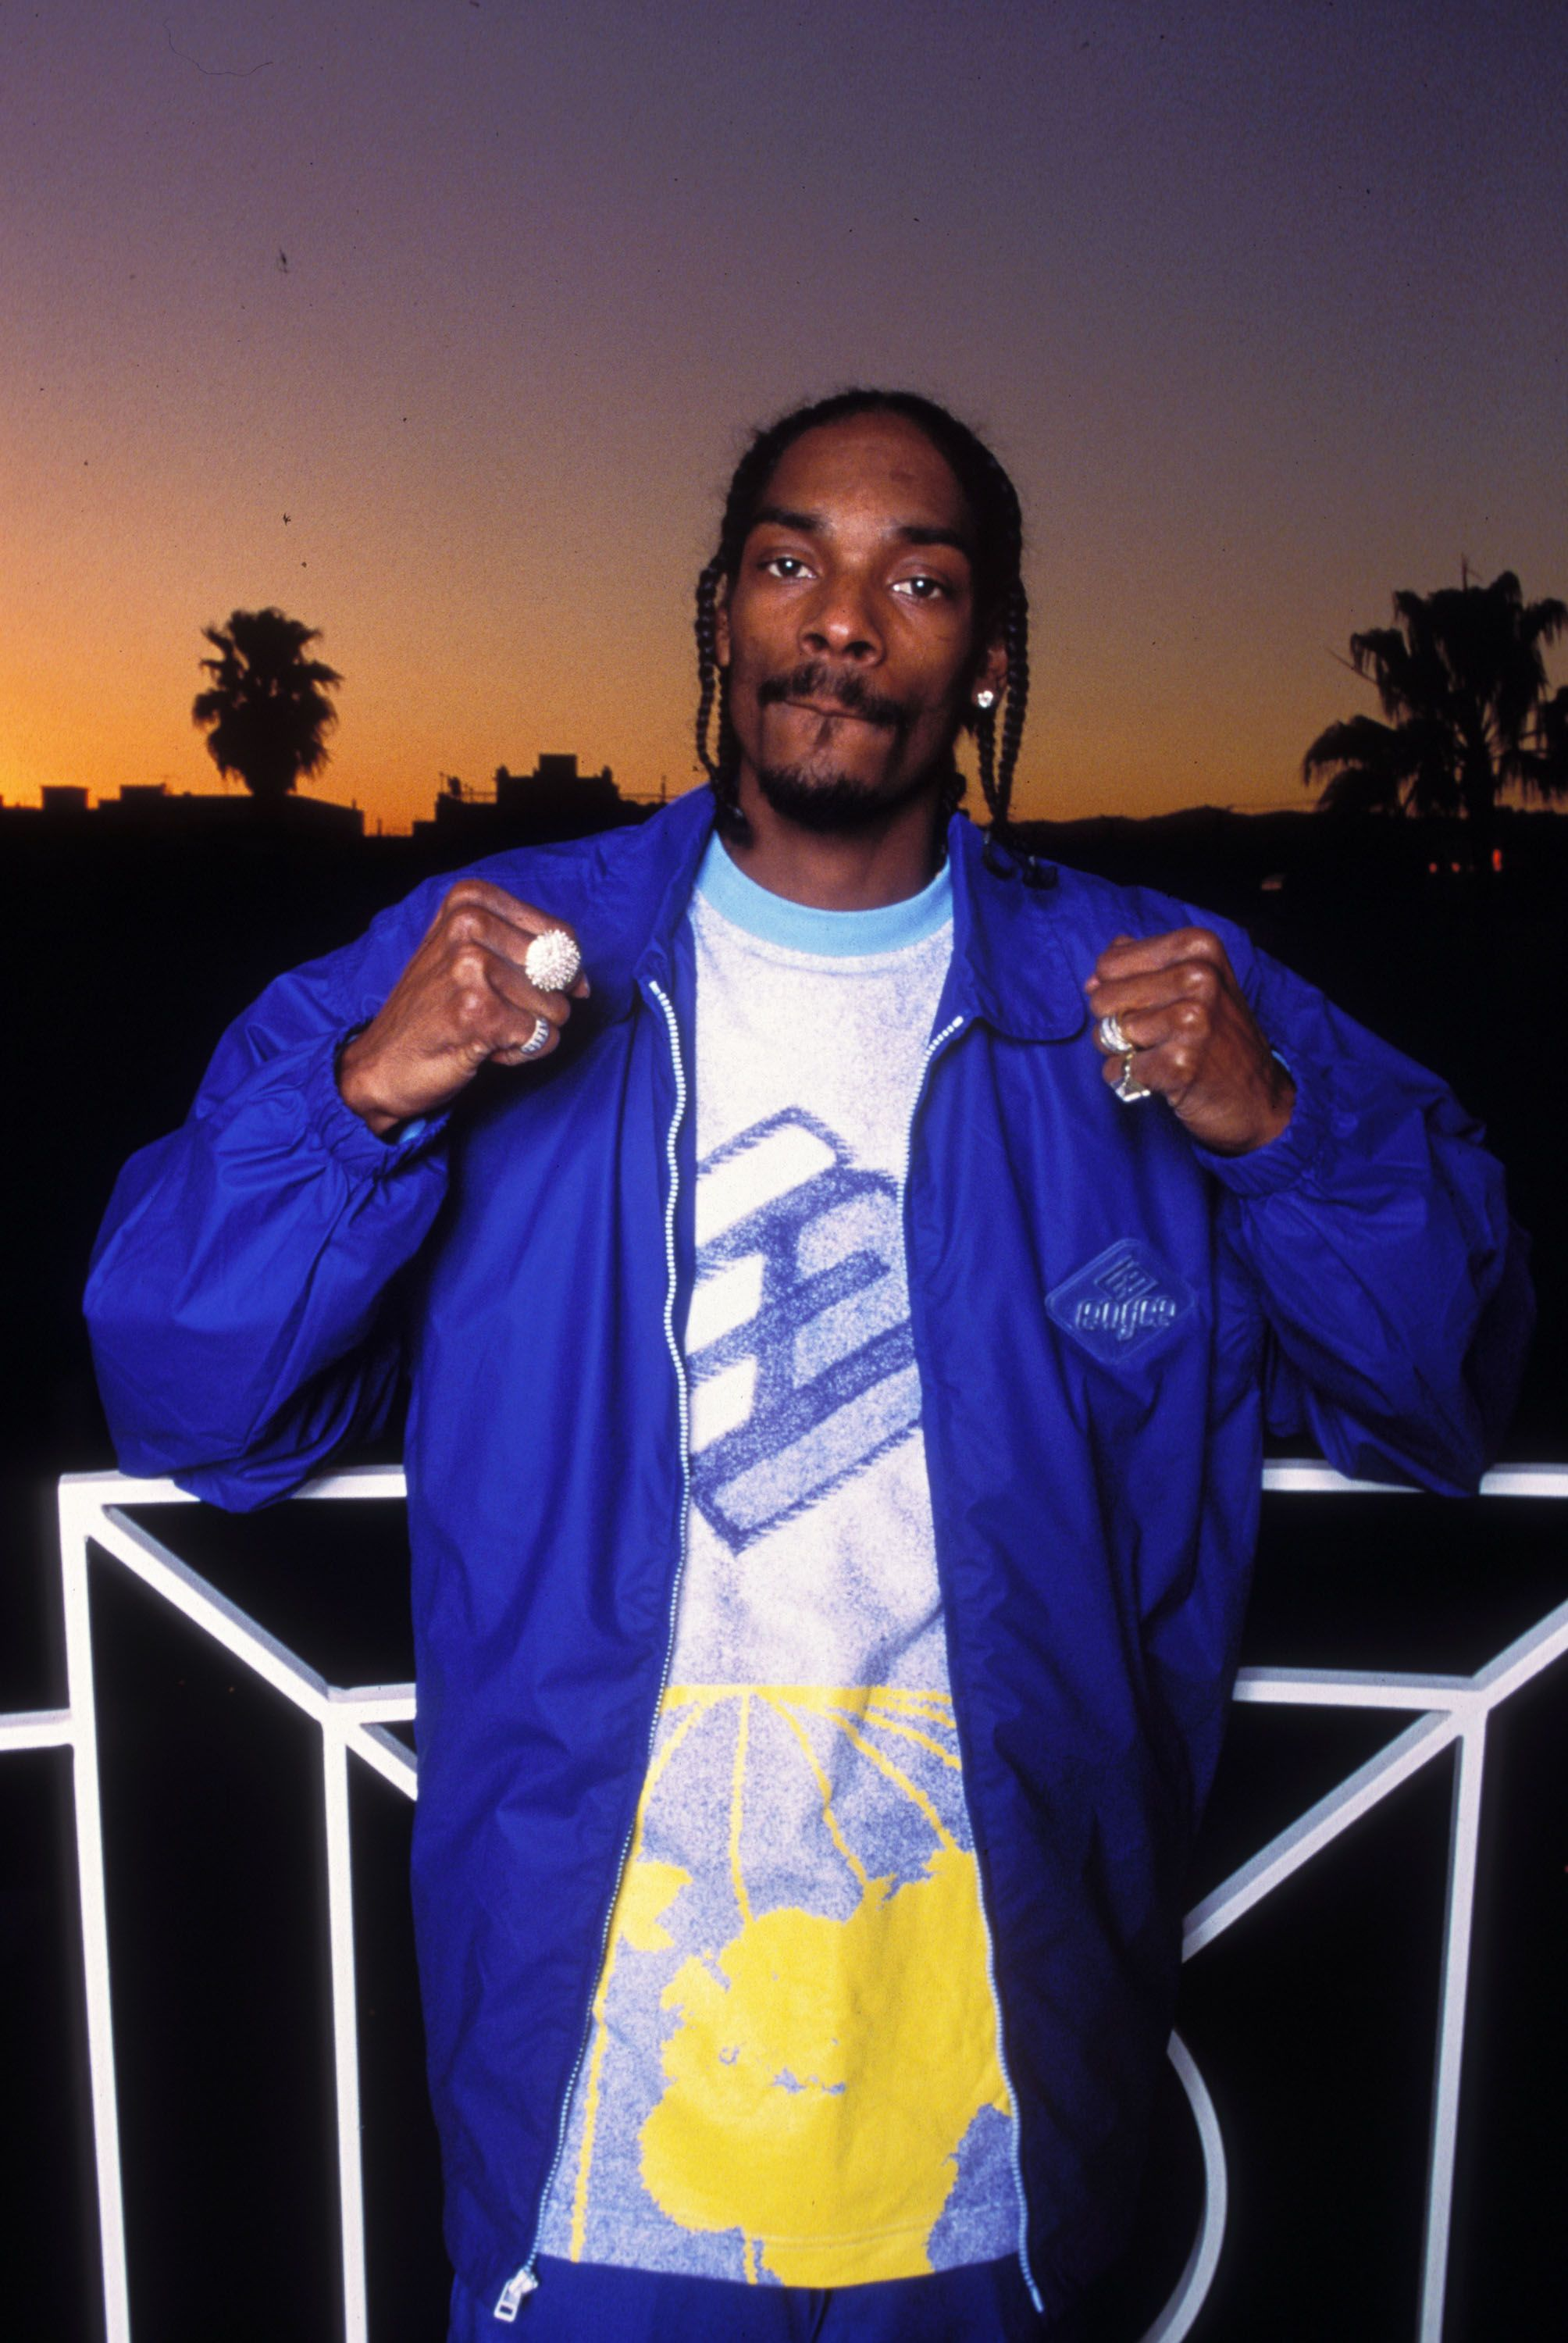 Snoop Doggy Dogg at the Four Seasons Hotel in Beverly Hills, California | Photo: Getty Images